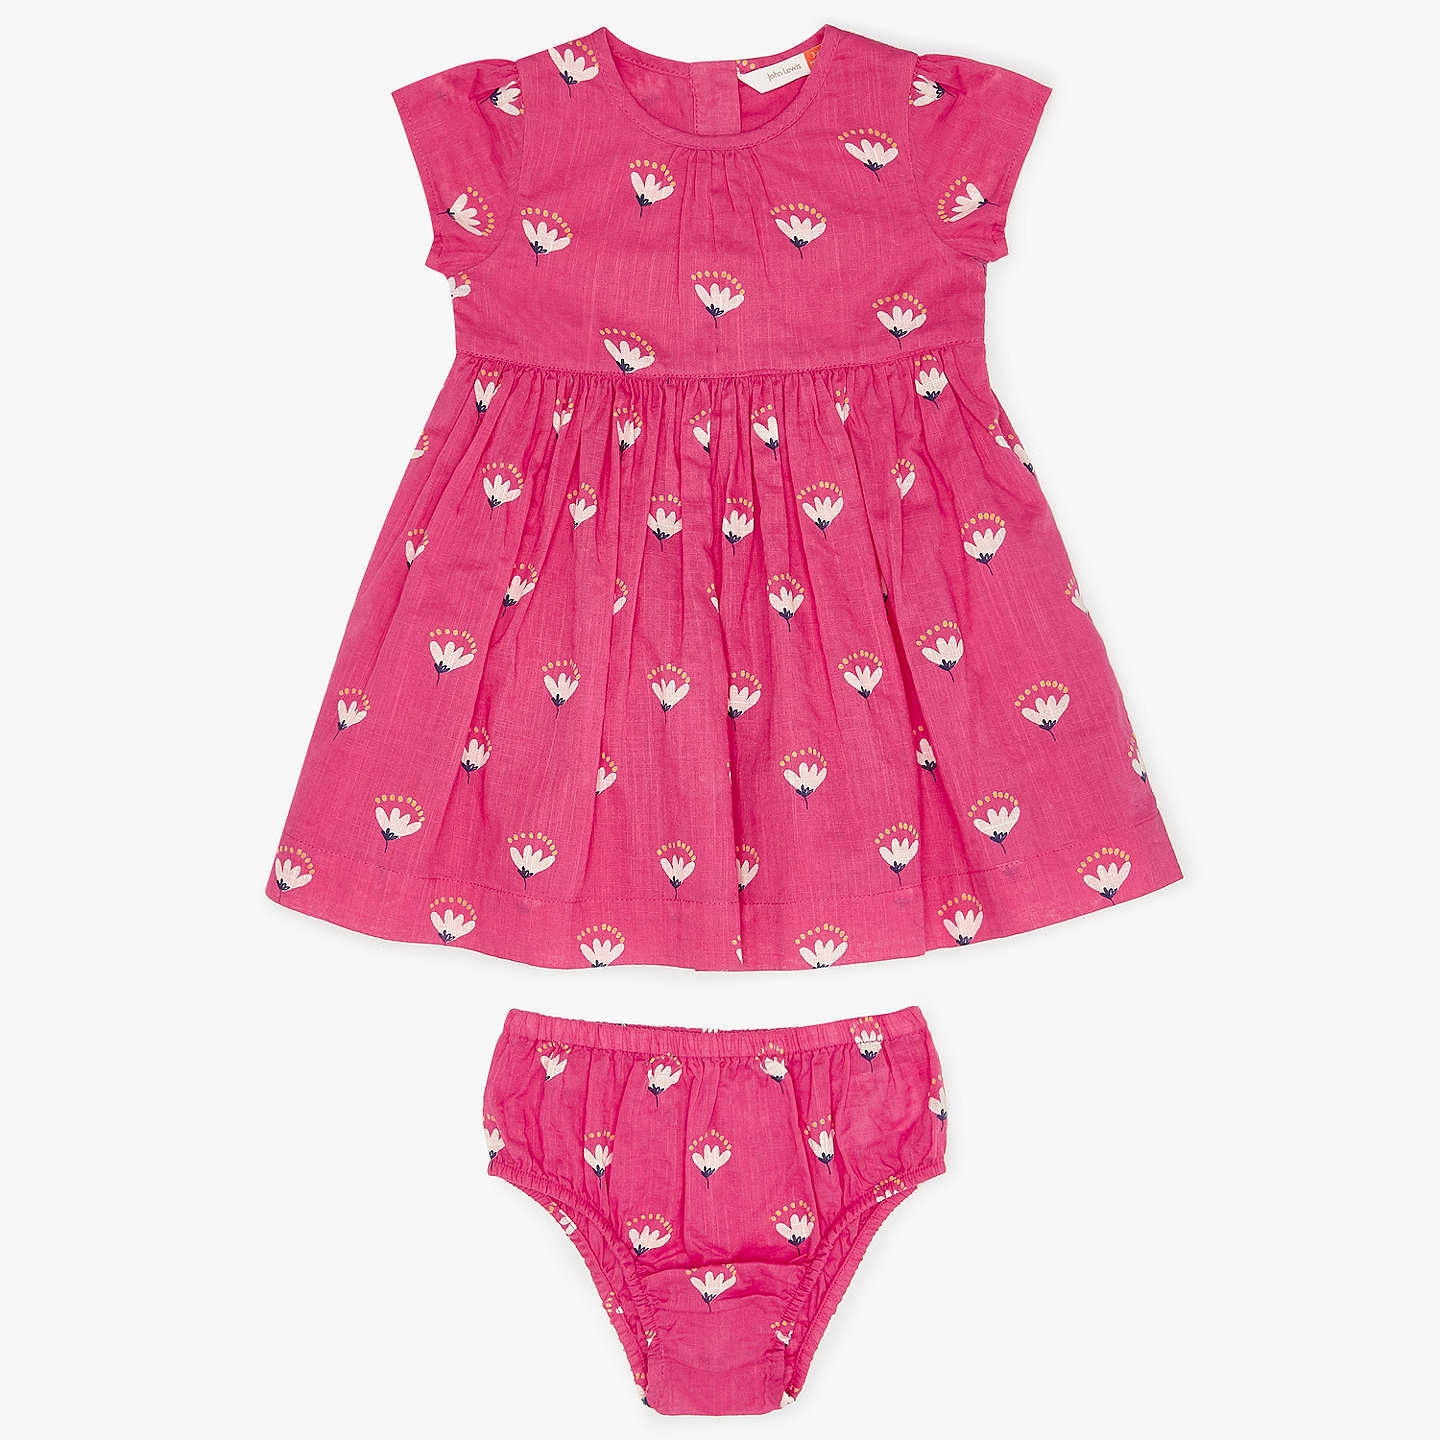 John Lewis Baby Floral Dress and Knickers Pink at John Lewis